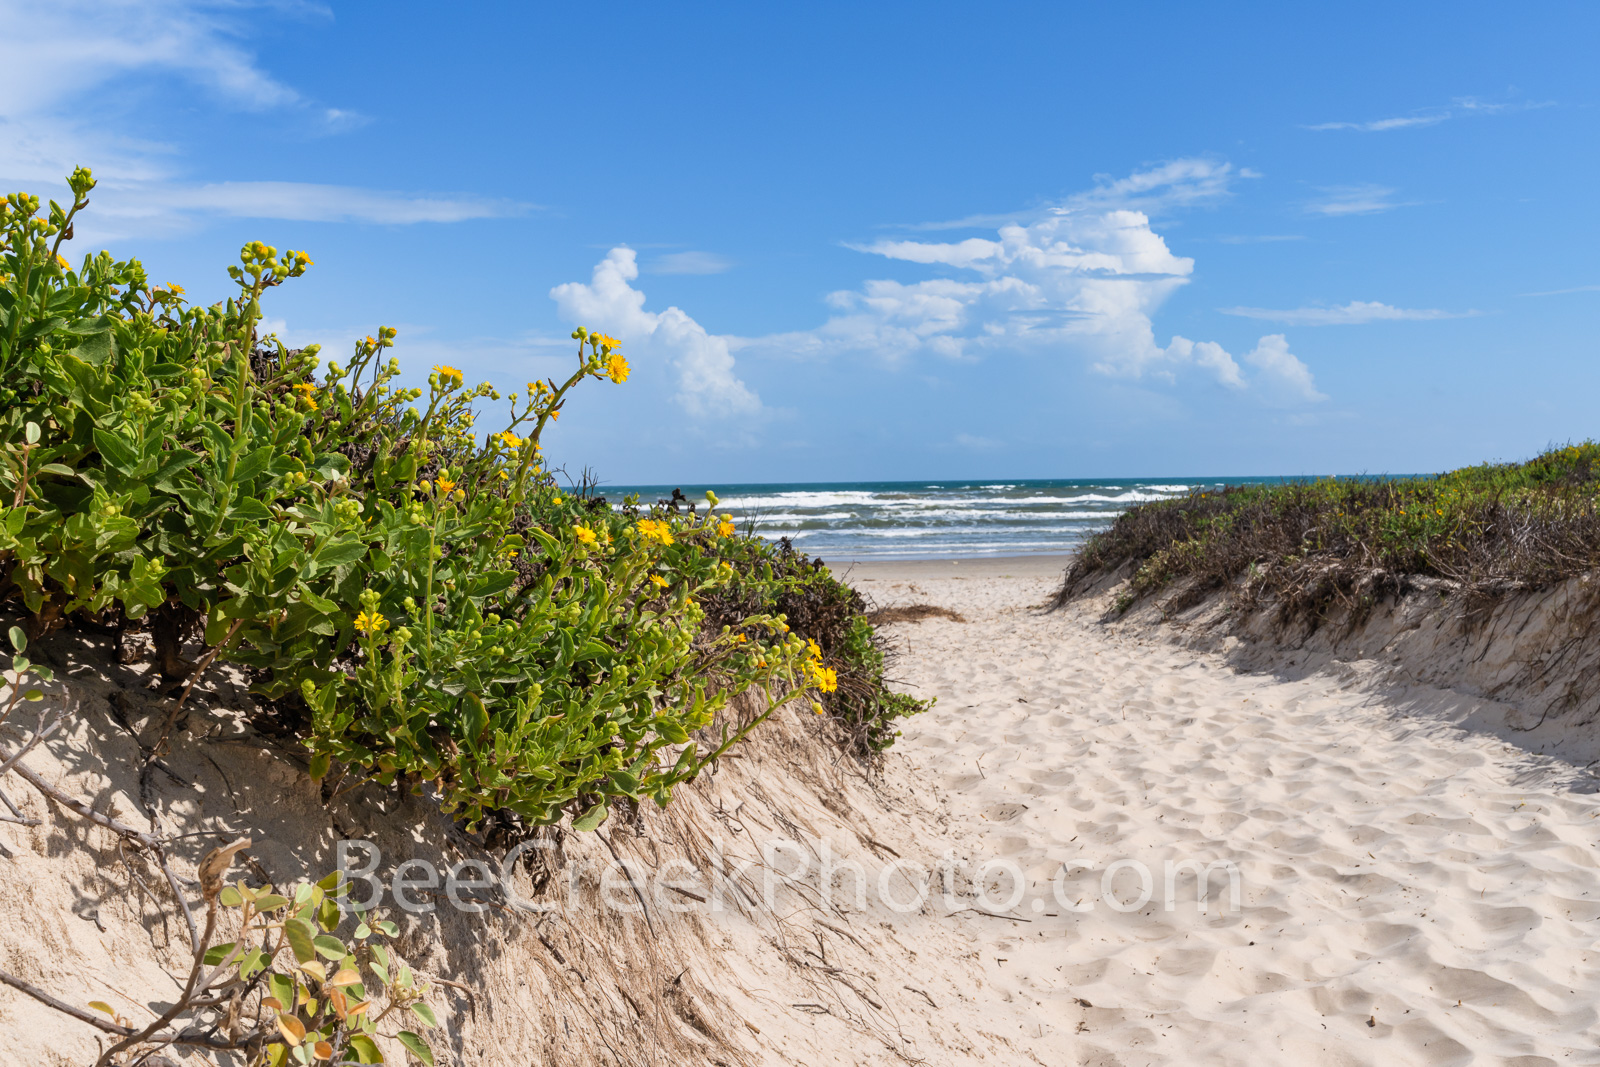 Padre Island National Seashore, north padre island, beach, surf, ocean, dunes, path, gulf of mexico, laguna madre,  kemps ridley, sea turtles, birds, barrier island, corpus christi, , photo